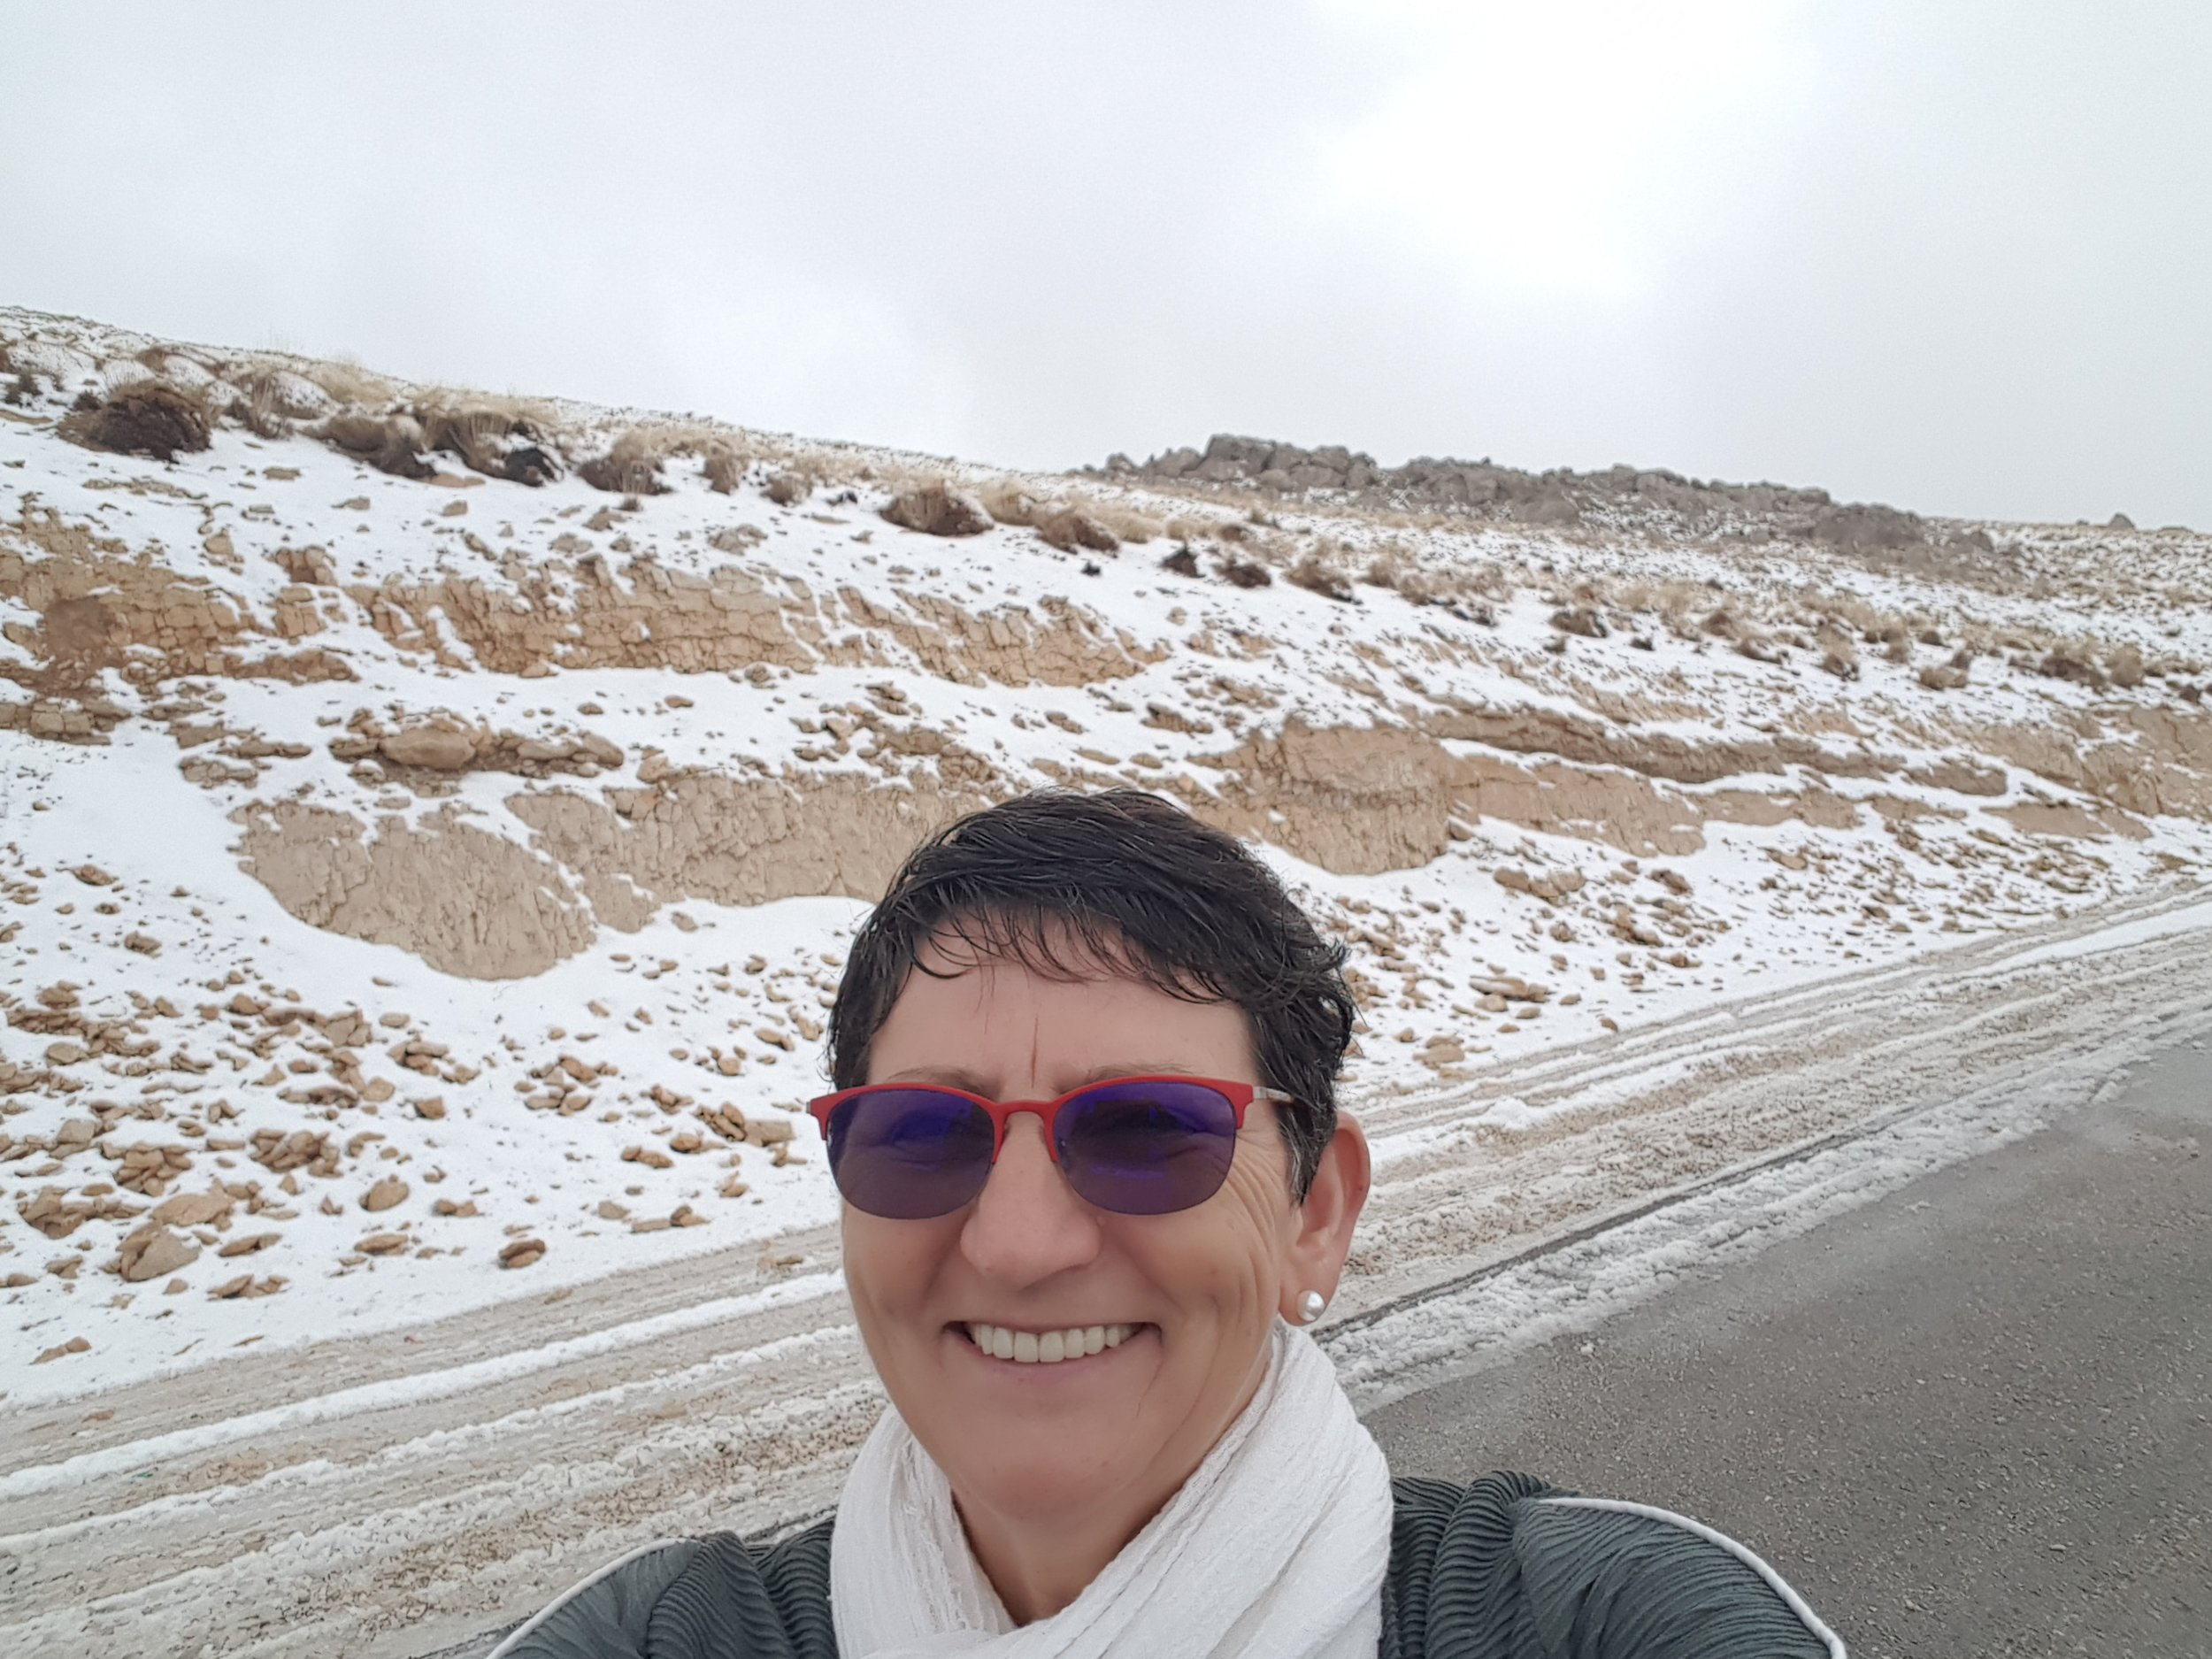 The first snow on an elevation of 1500 meters